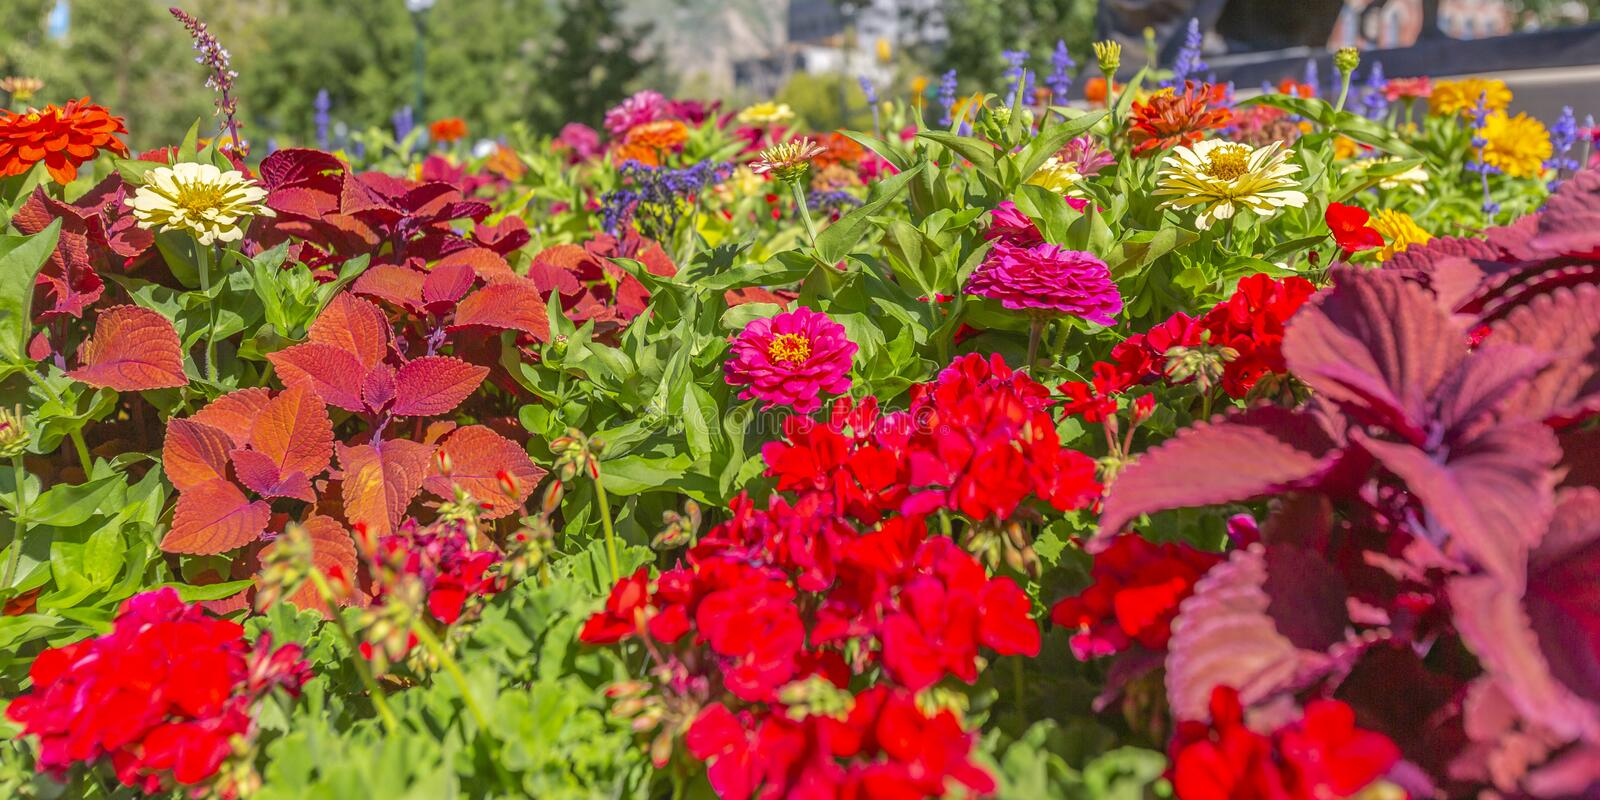 Vibrant colorful flowers under the bright sun. Close up view of vibrant flowers amongst bright green leaves. The delicate colorful flowers bloom beneath the royalty free stock photos